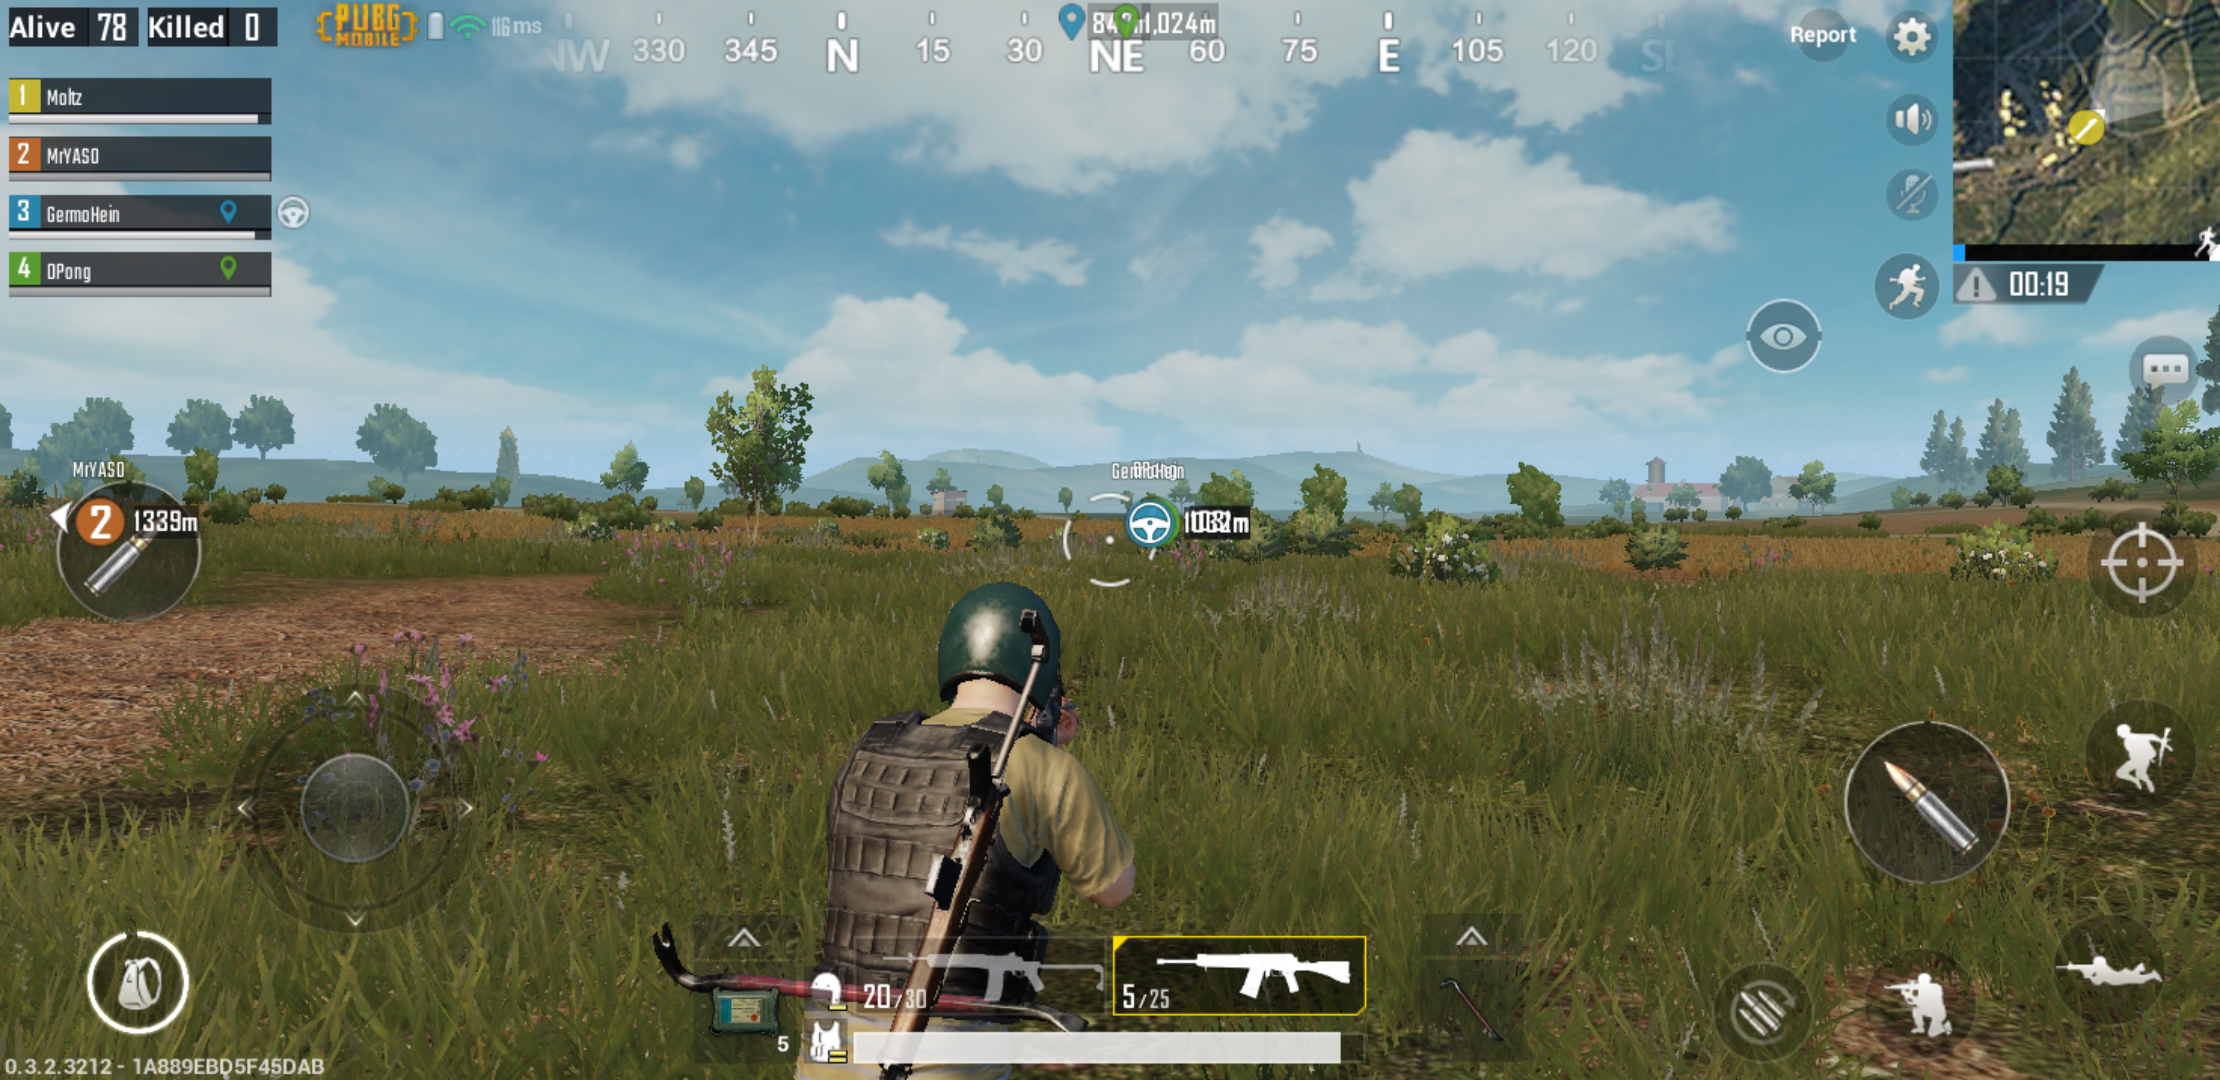 Playing Pubg Mobile With A Keyboard And Mouse Might Not Be Cheating